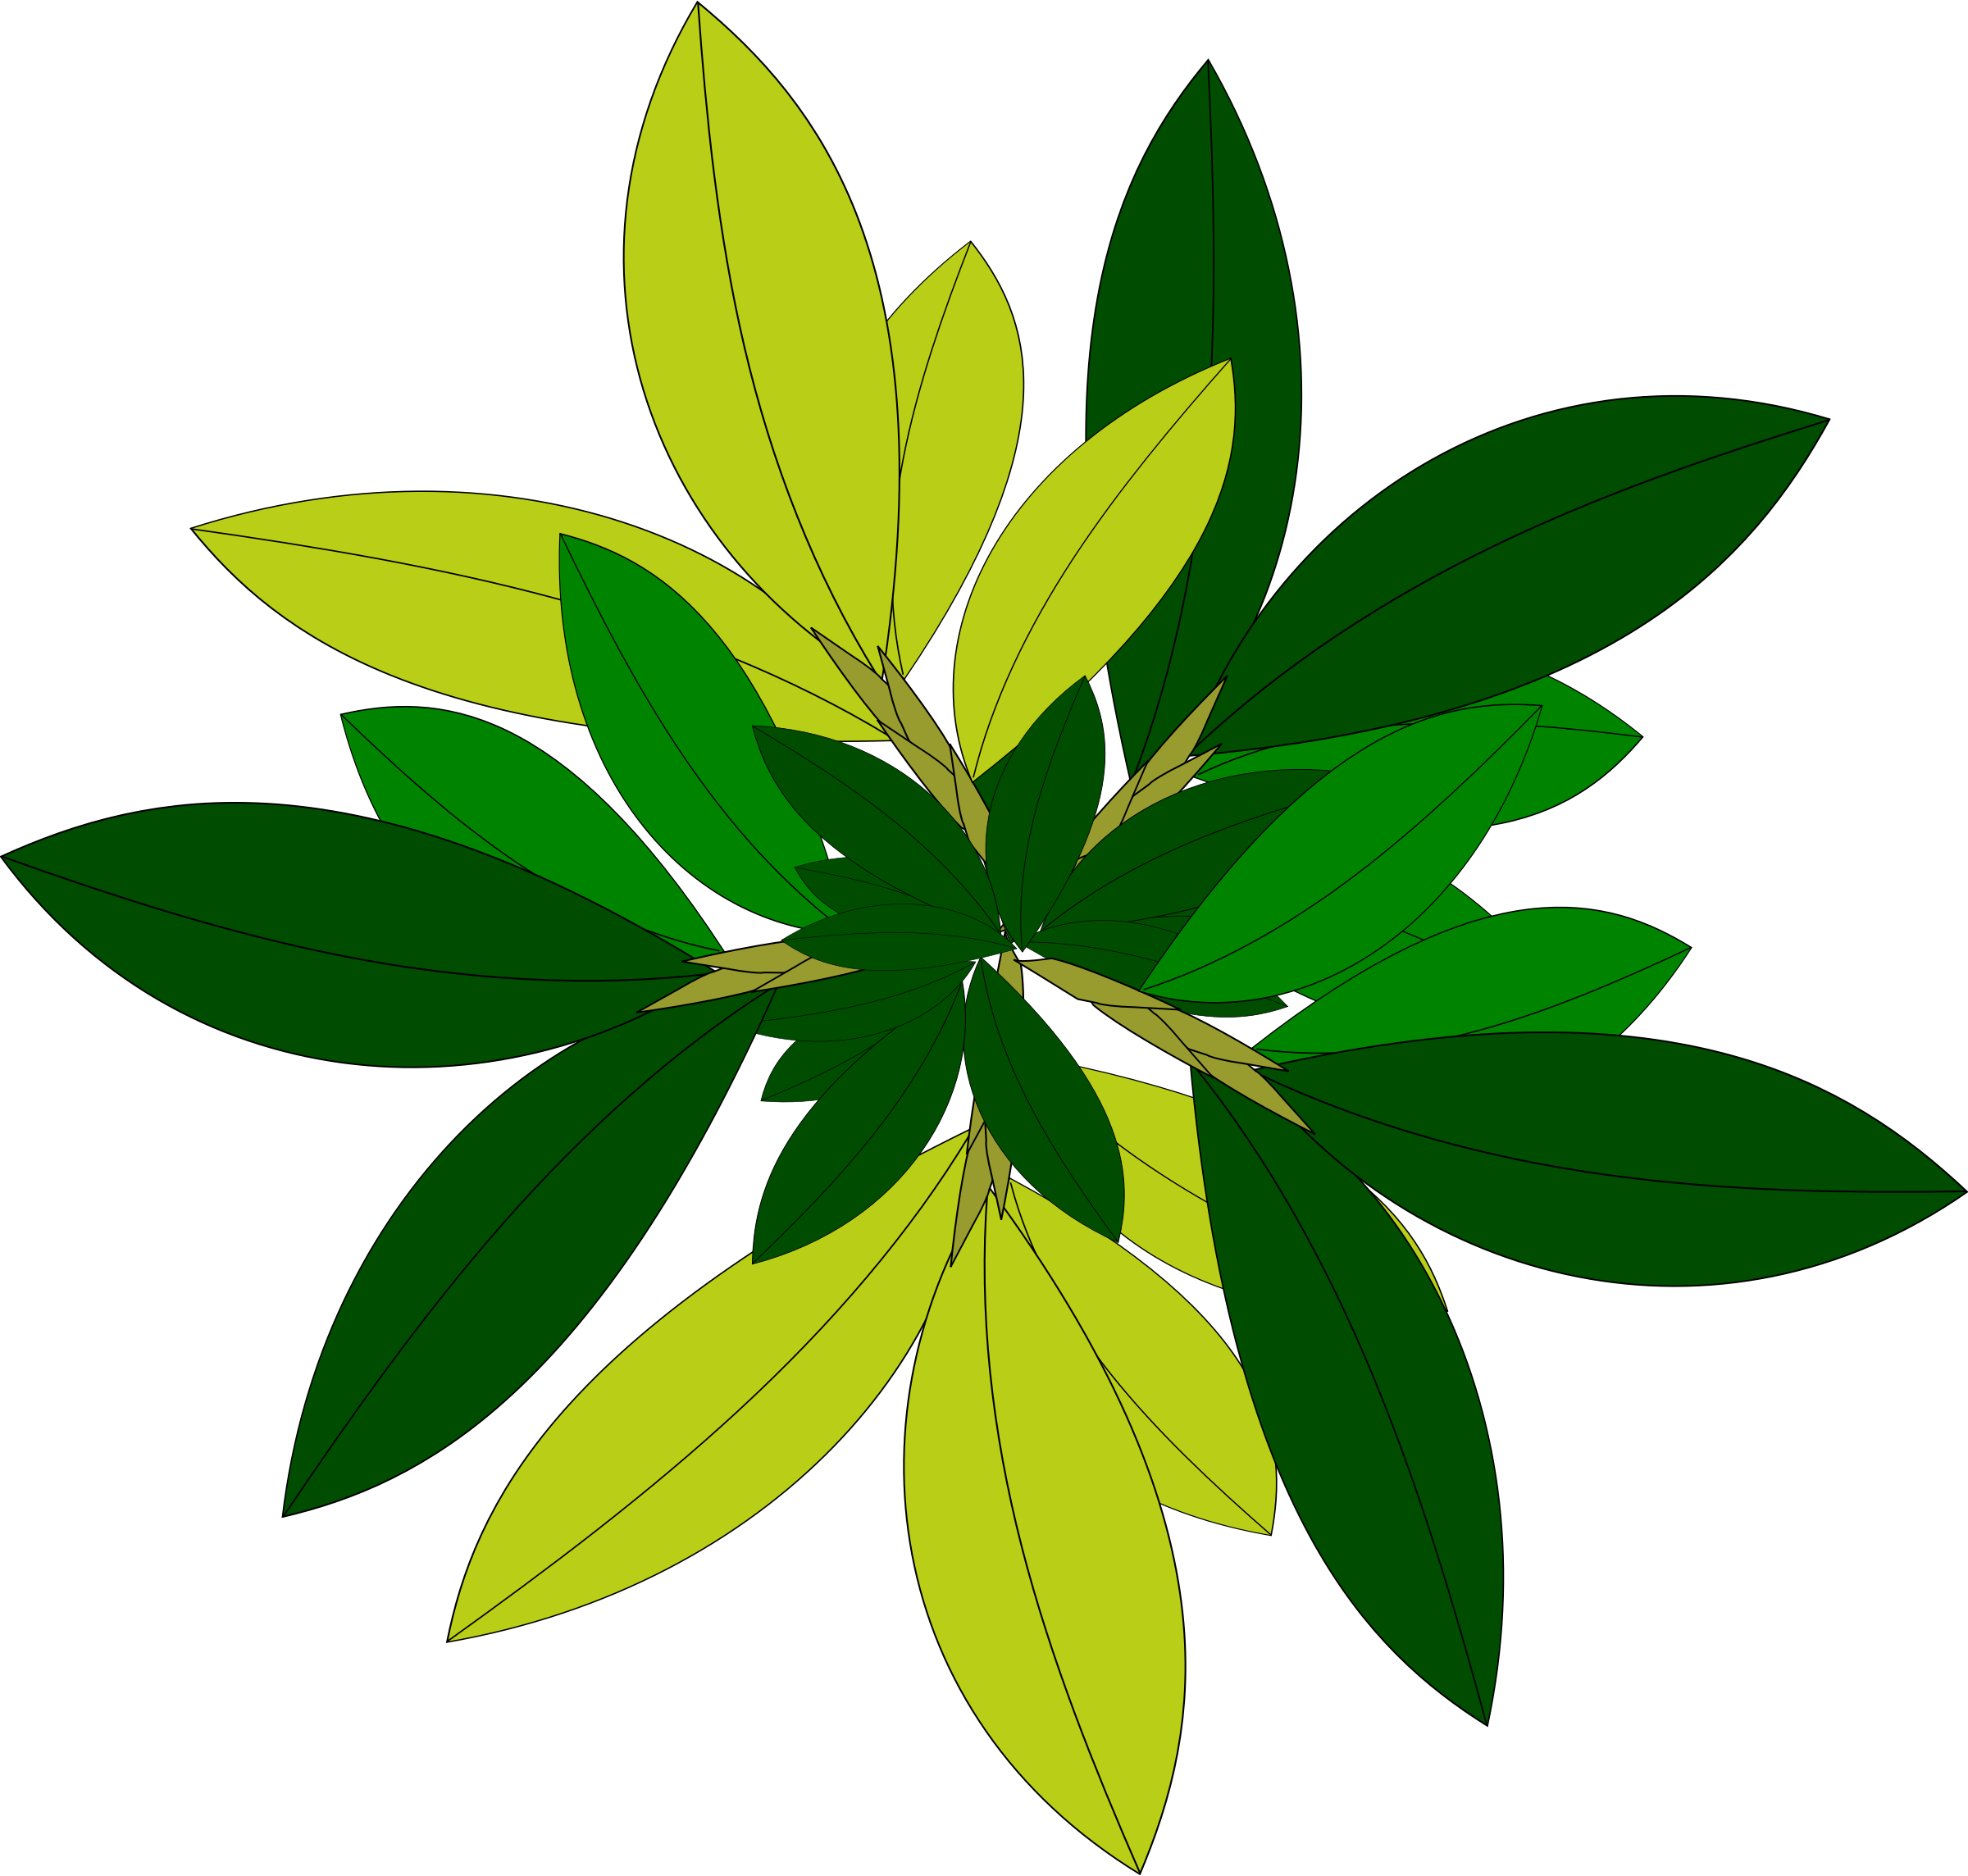 Big image png. Plant clipart tree